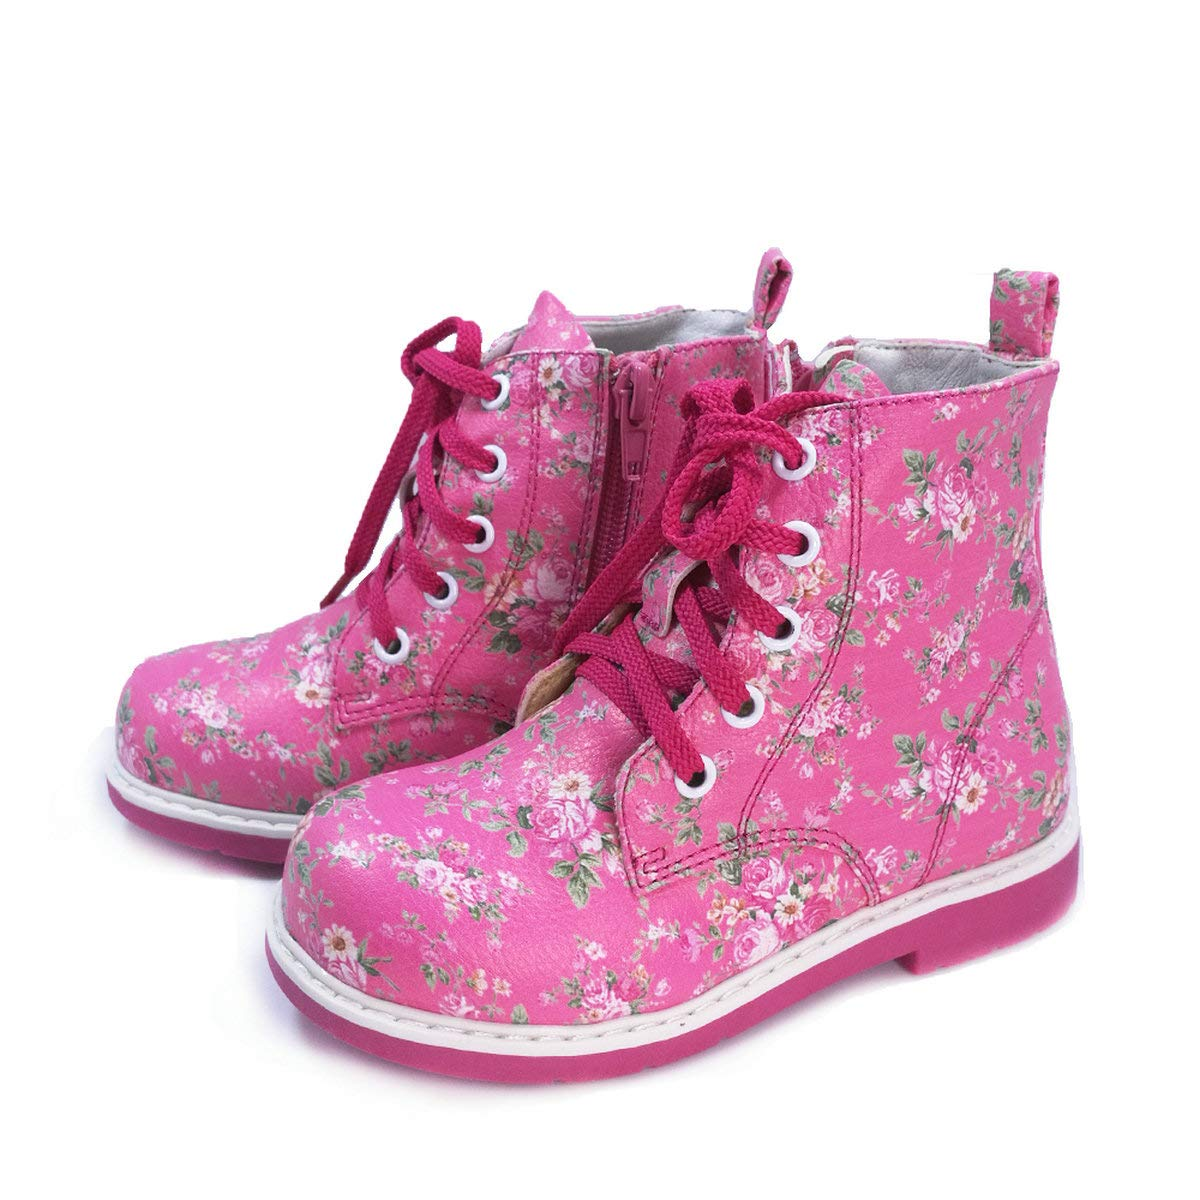 Ortoluckland Little Girls Cute High-Top Corrective Orthopedic PU Leather Boot